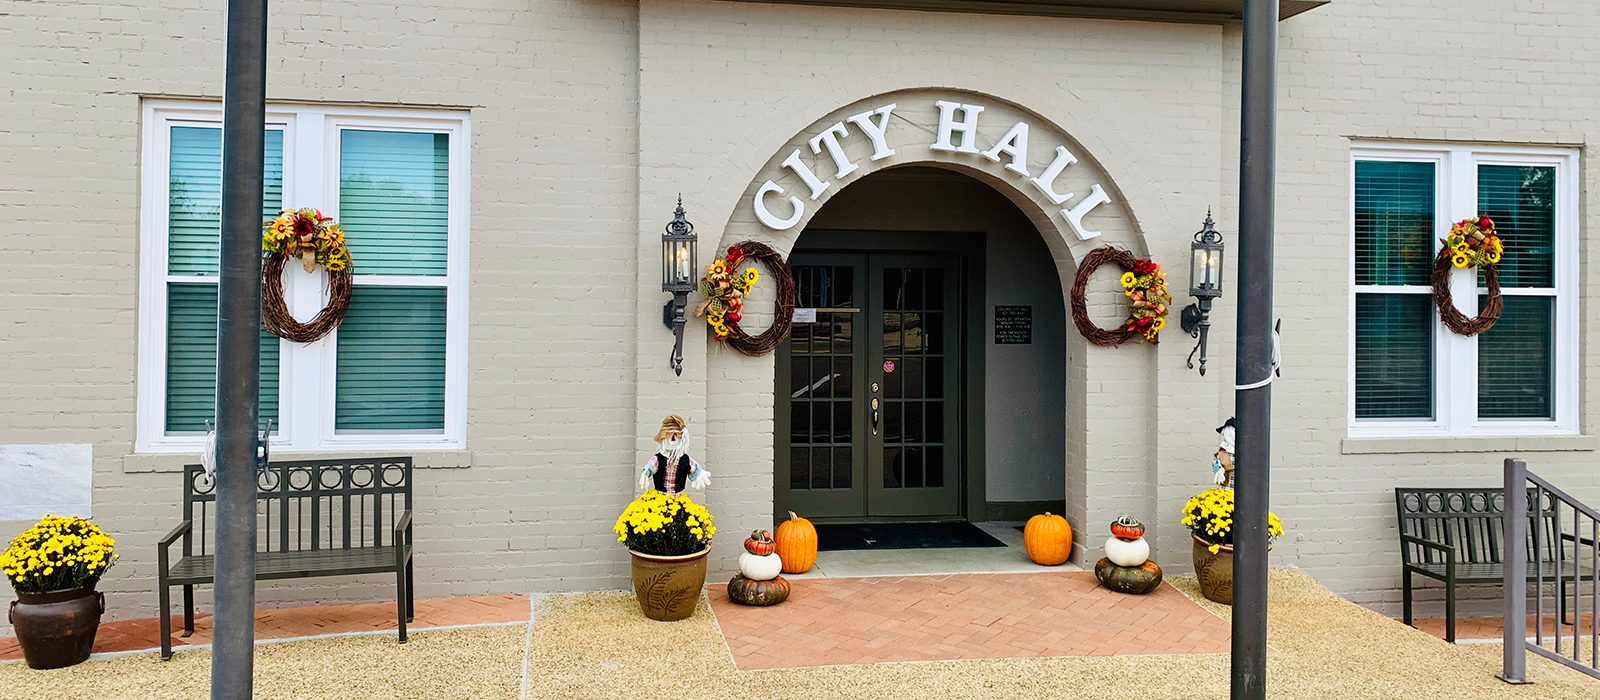 city-hall-fall-2